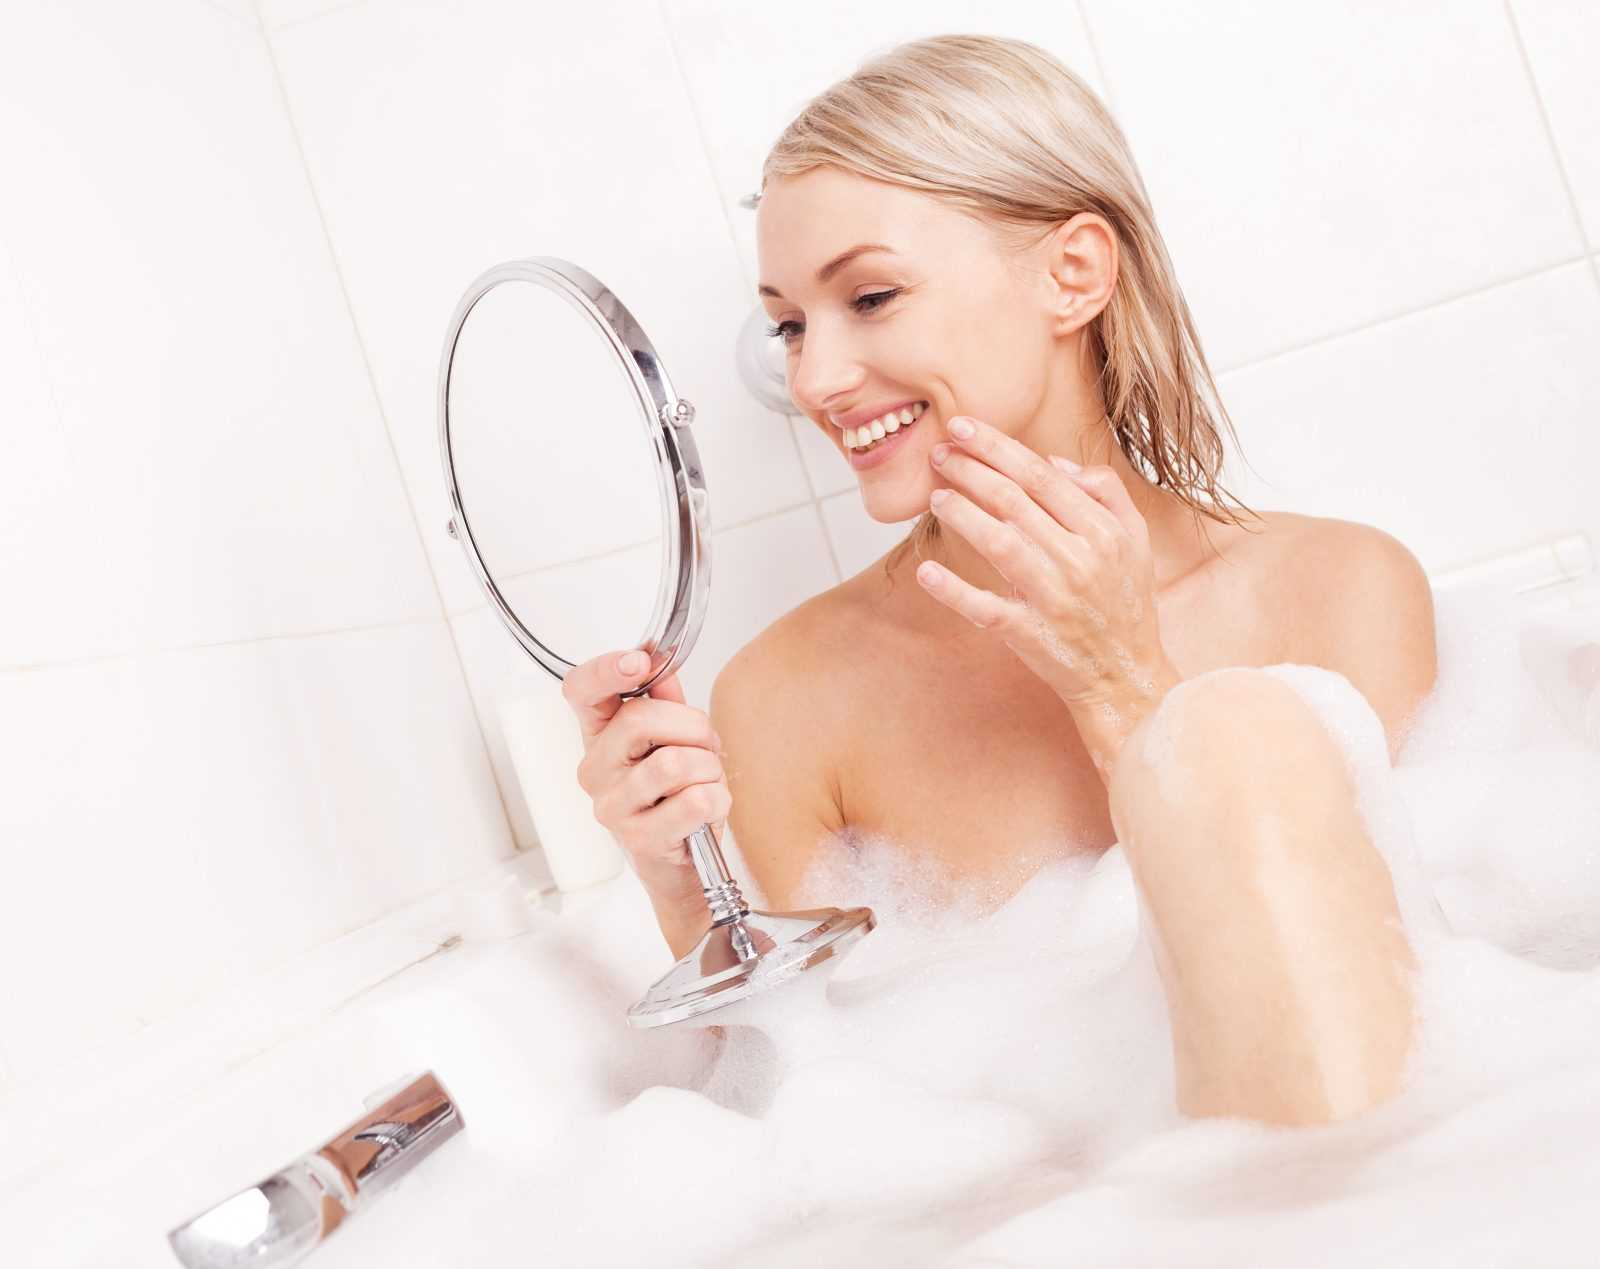 https://www.levisagewellness.com/try-hydralift-in-edmonds-for-more-youthful-skin/